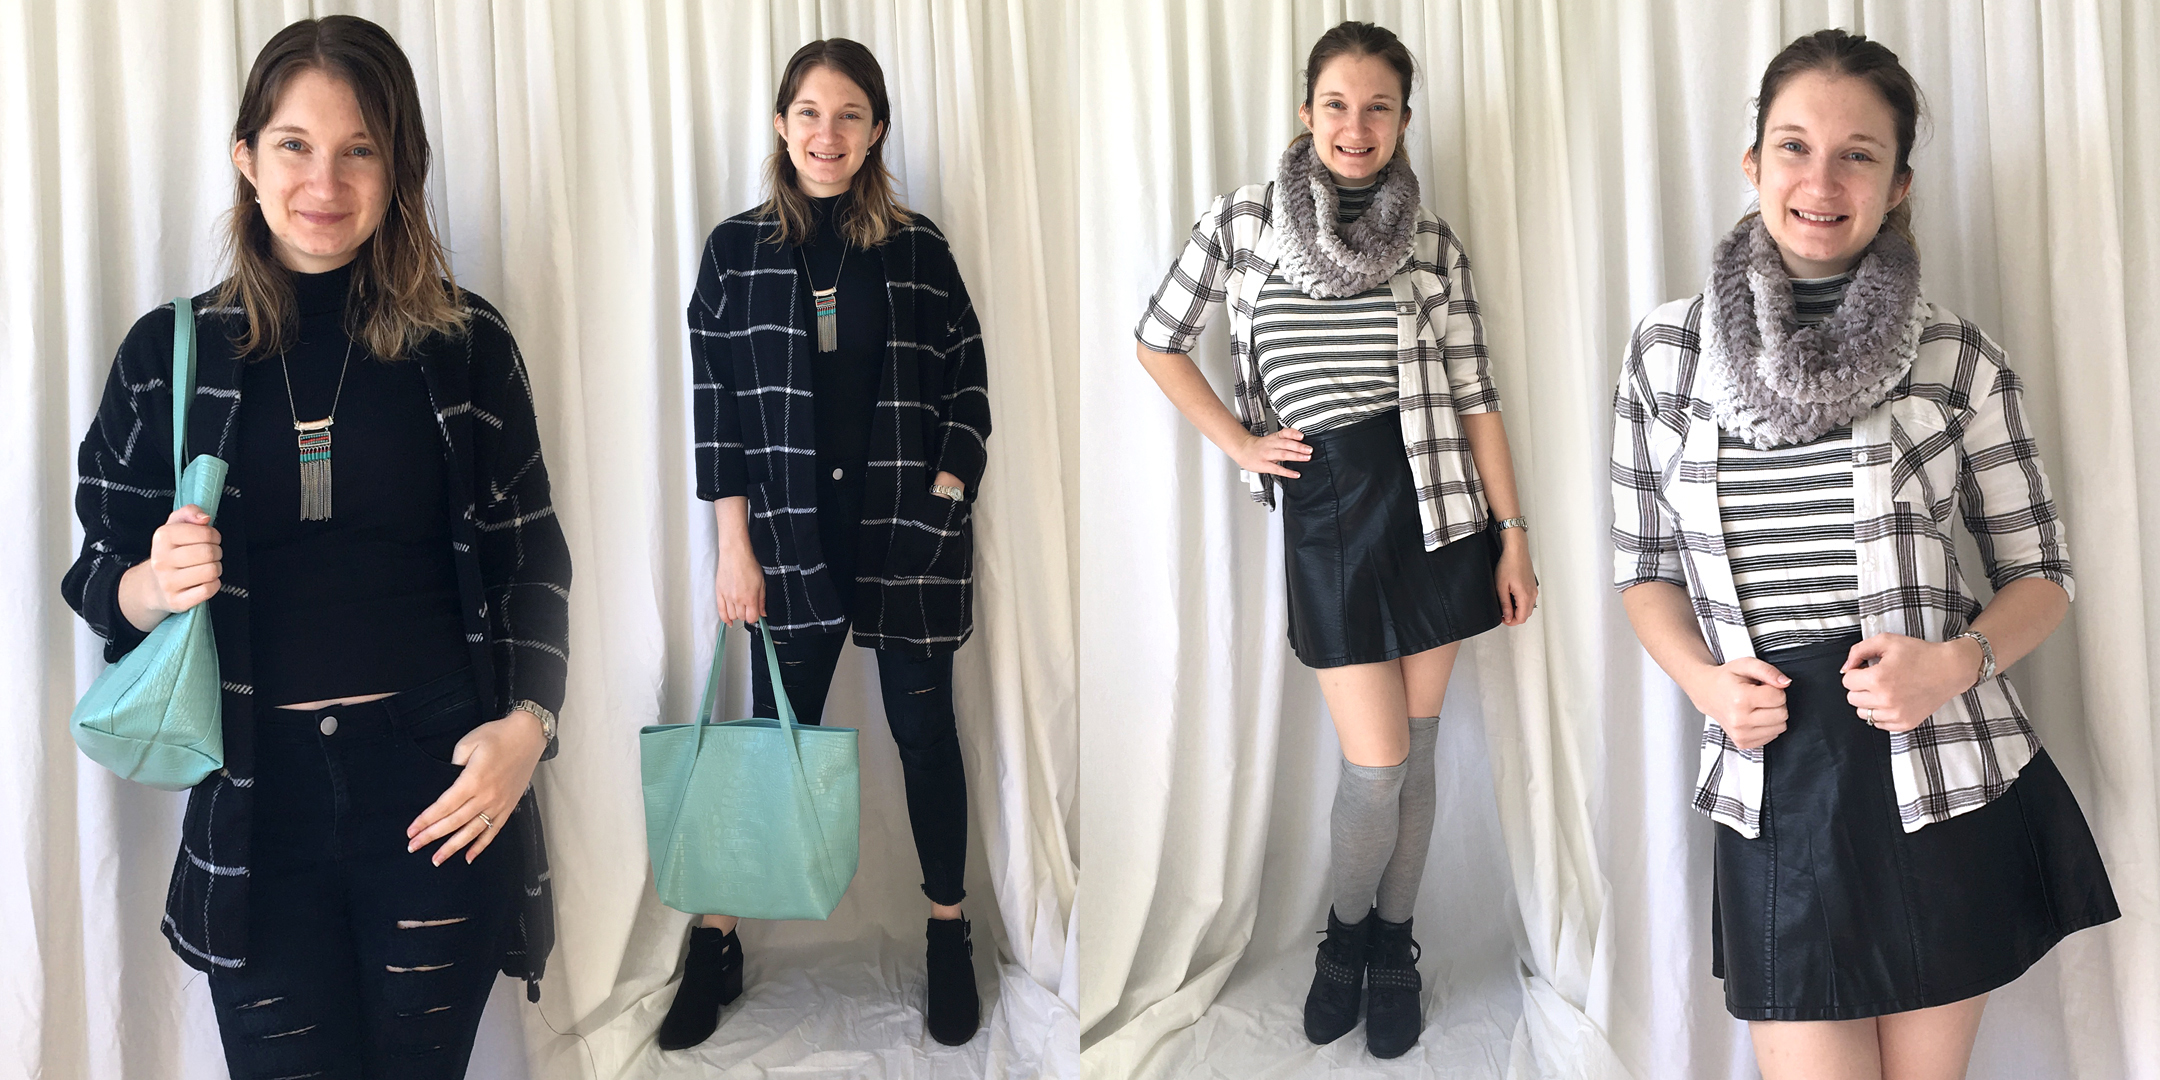 Instagram Round Up #20 Outfits April 2